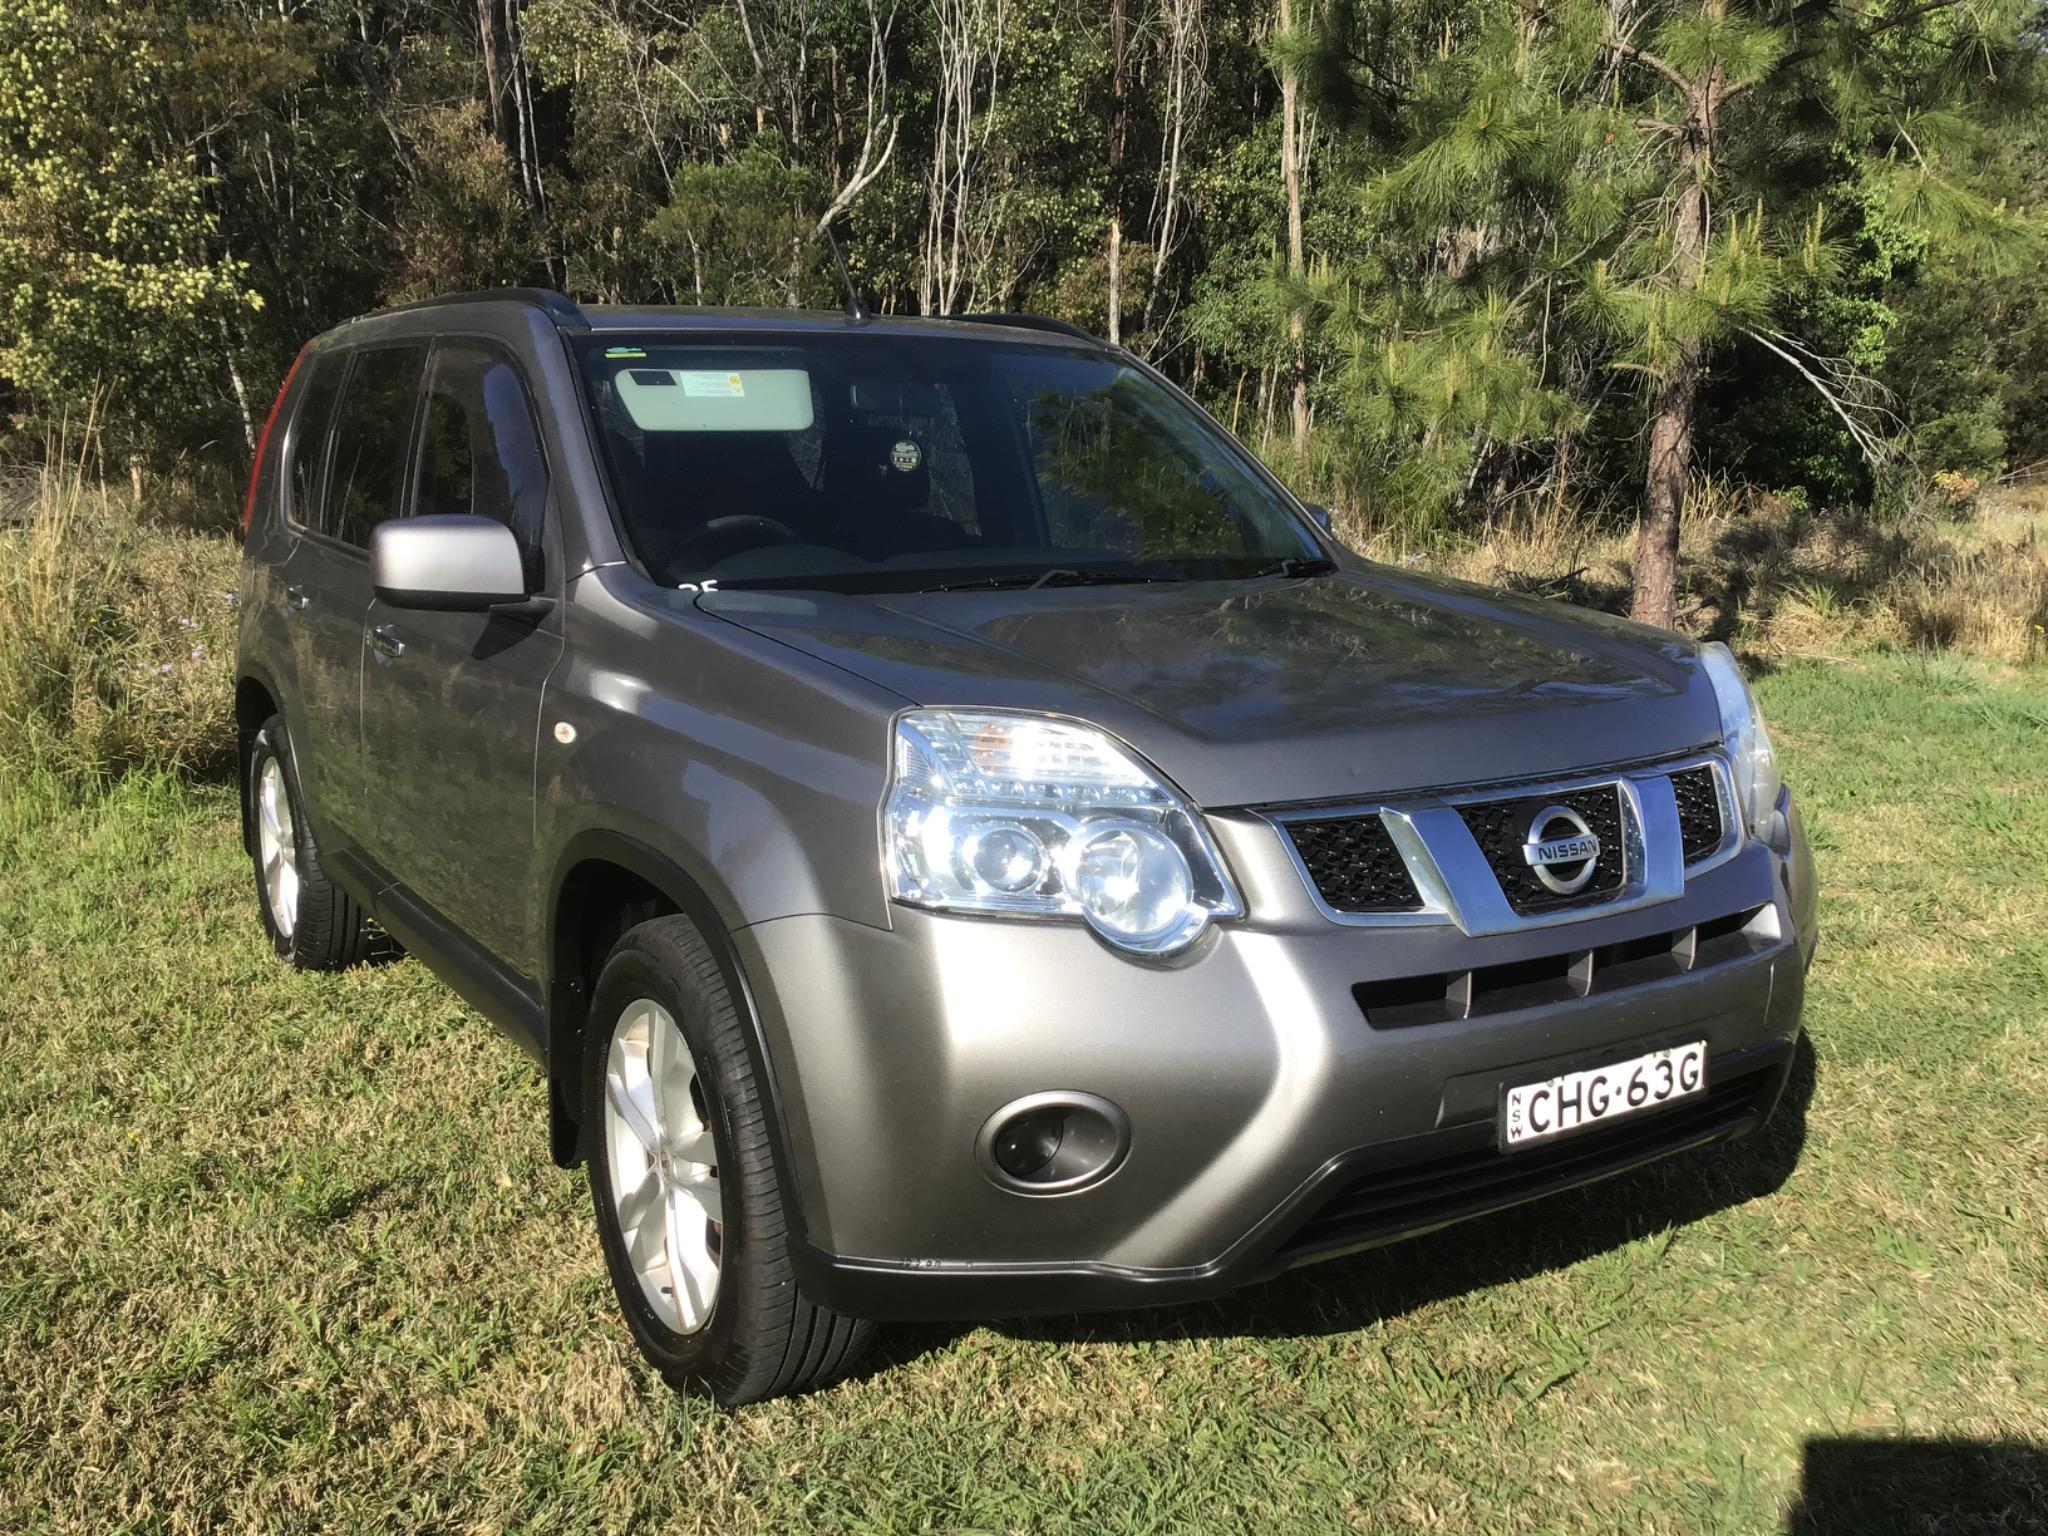 2012 Nissan X-Trail T31 ST Wagon 4dr CVT 1sp 2WD 2.0i Picture 8